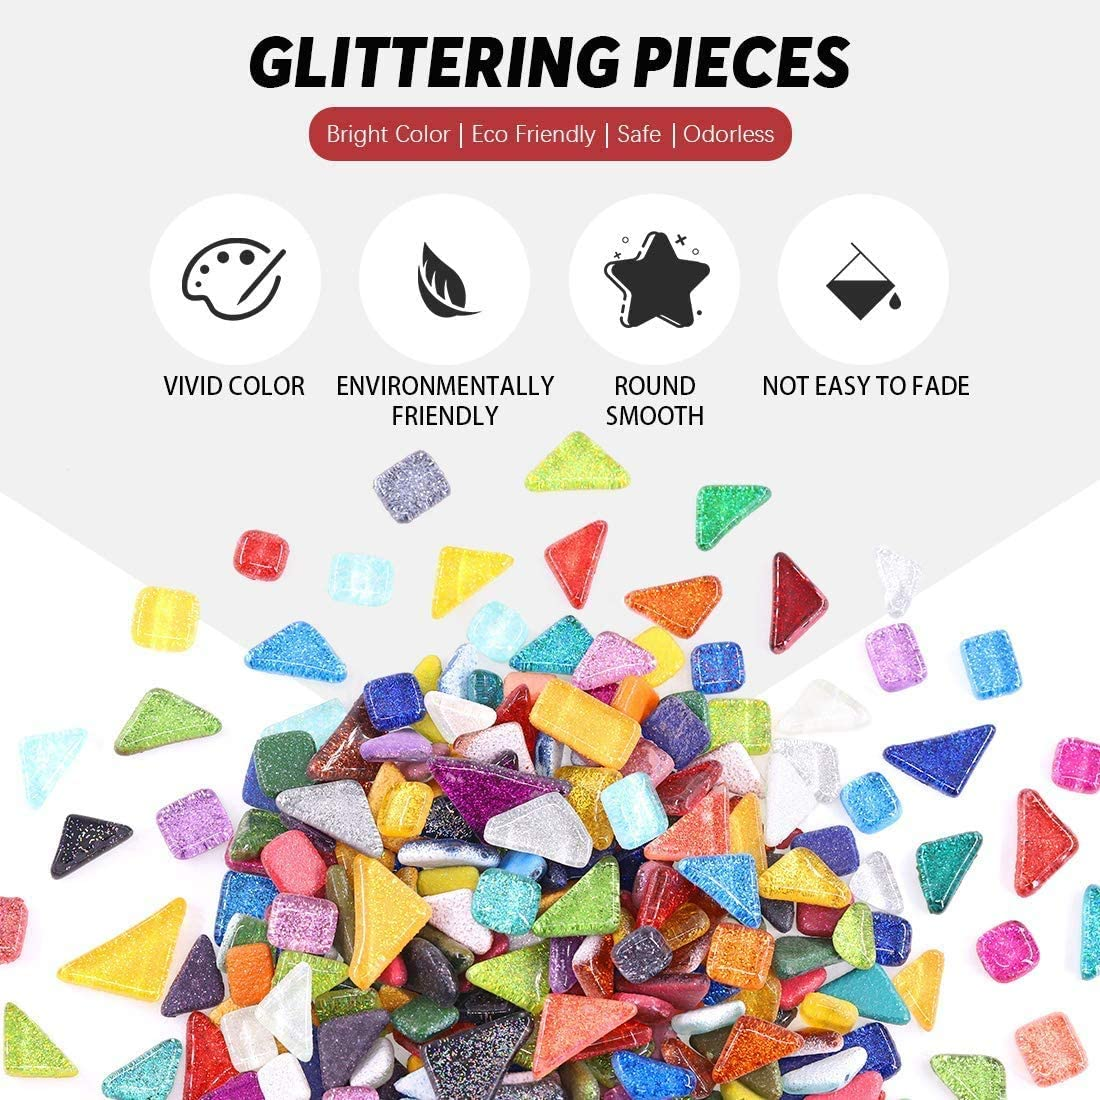 Handmade Jewelry Picture Frames 1 Lb Mixed Color Mosaic Tiles Shine Crystal Mosaic Tiles Assortment Kit Plates Flowerpots DIY Craft Glass Pieces for Home Decoration Crafts